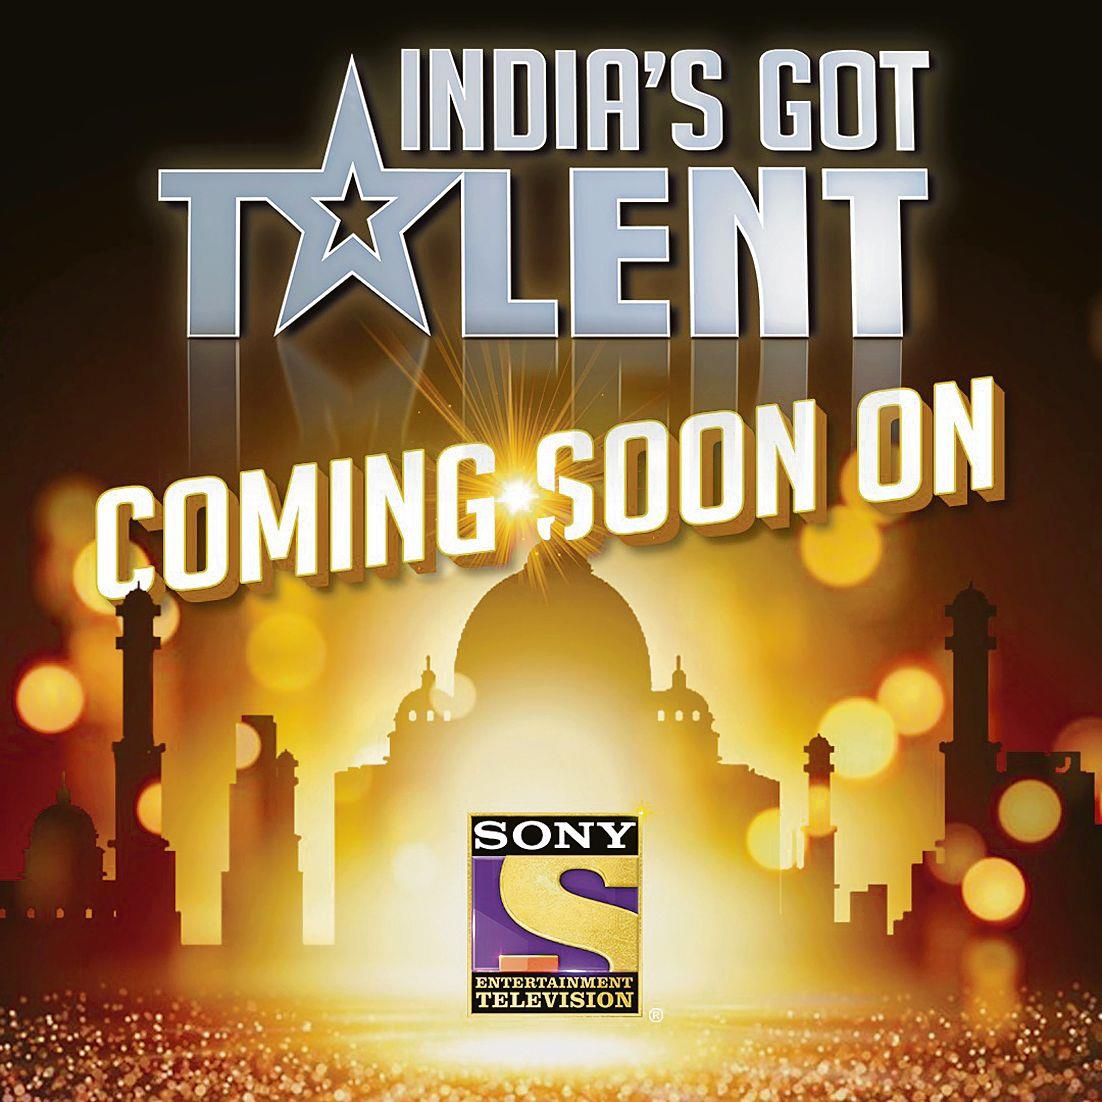 Sony TV acquires rights of India's Got Talent